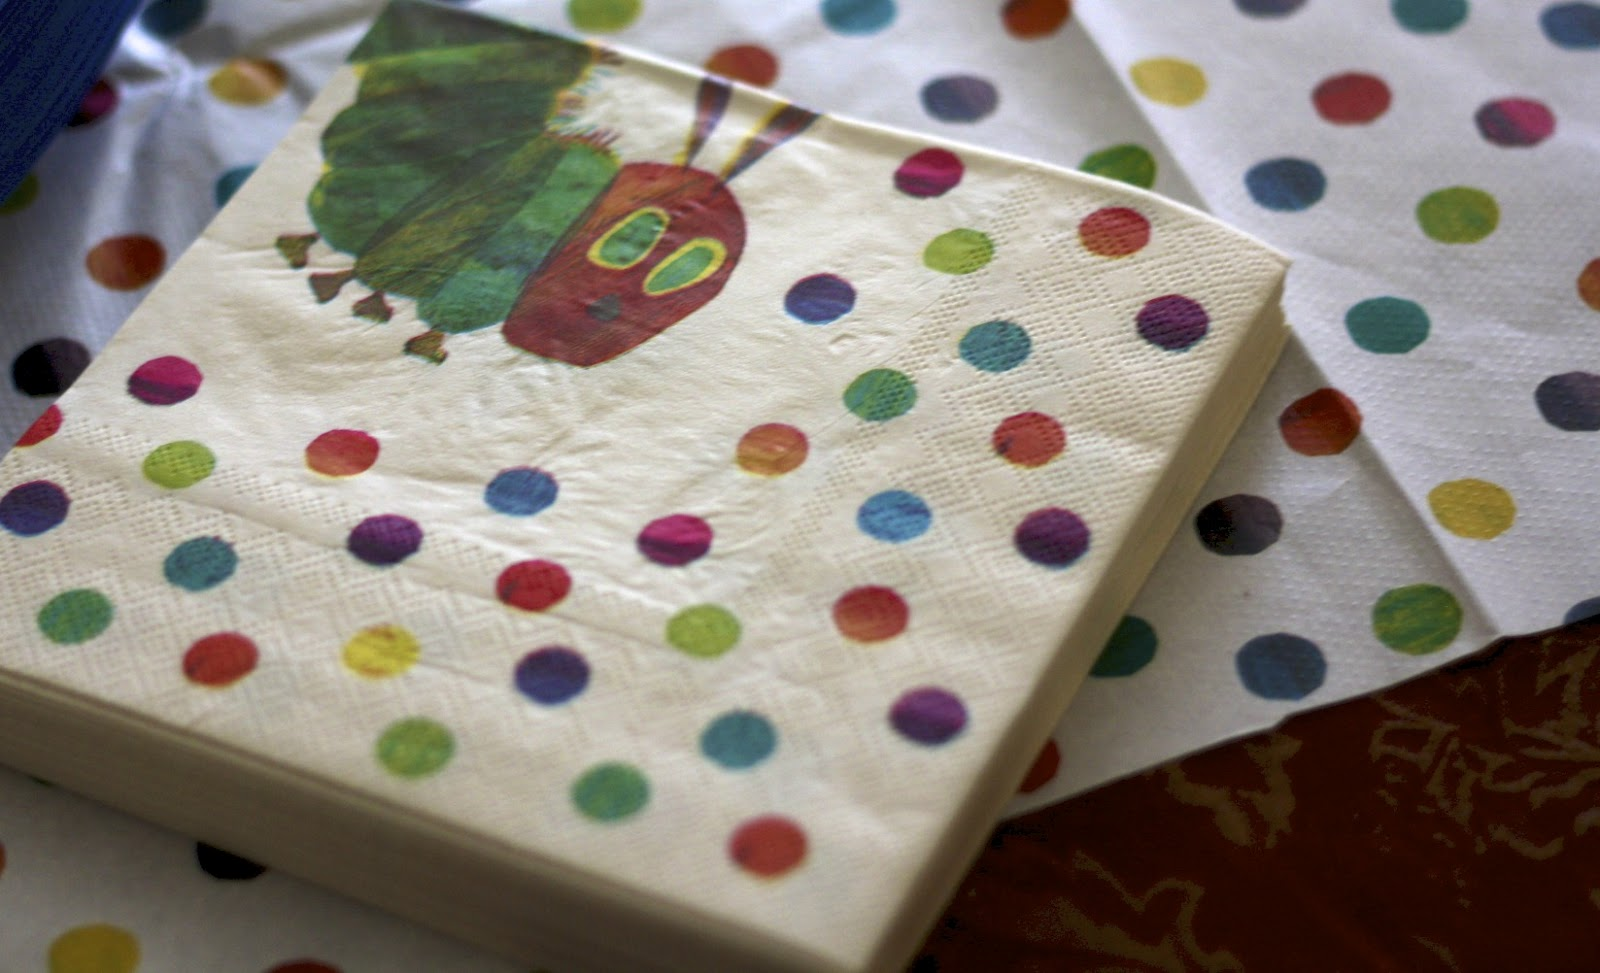 Simply Mommies: The Very Hungry Caterpillar Birthday Party